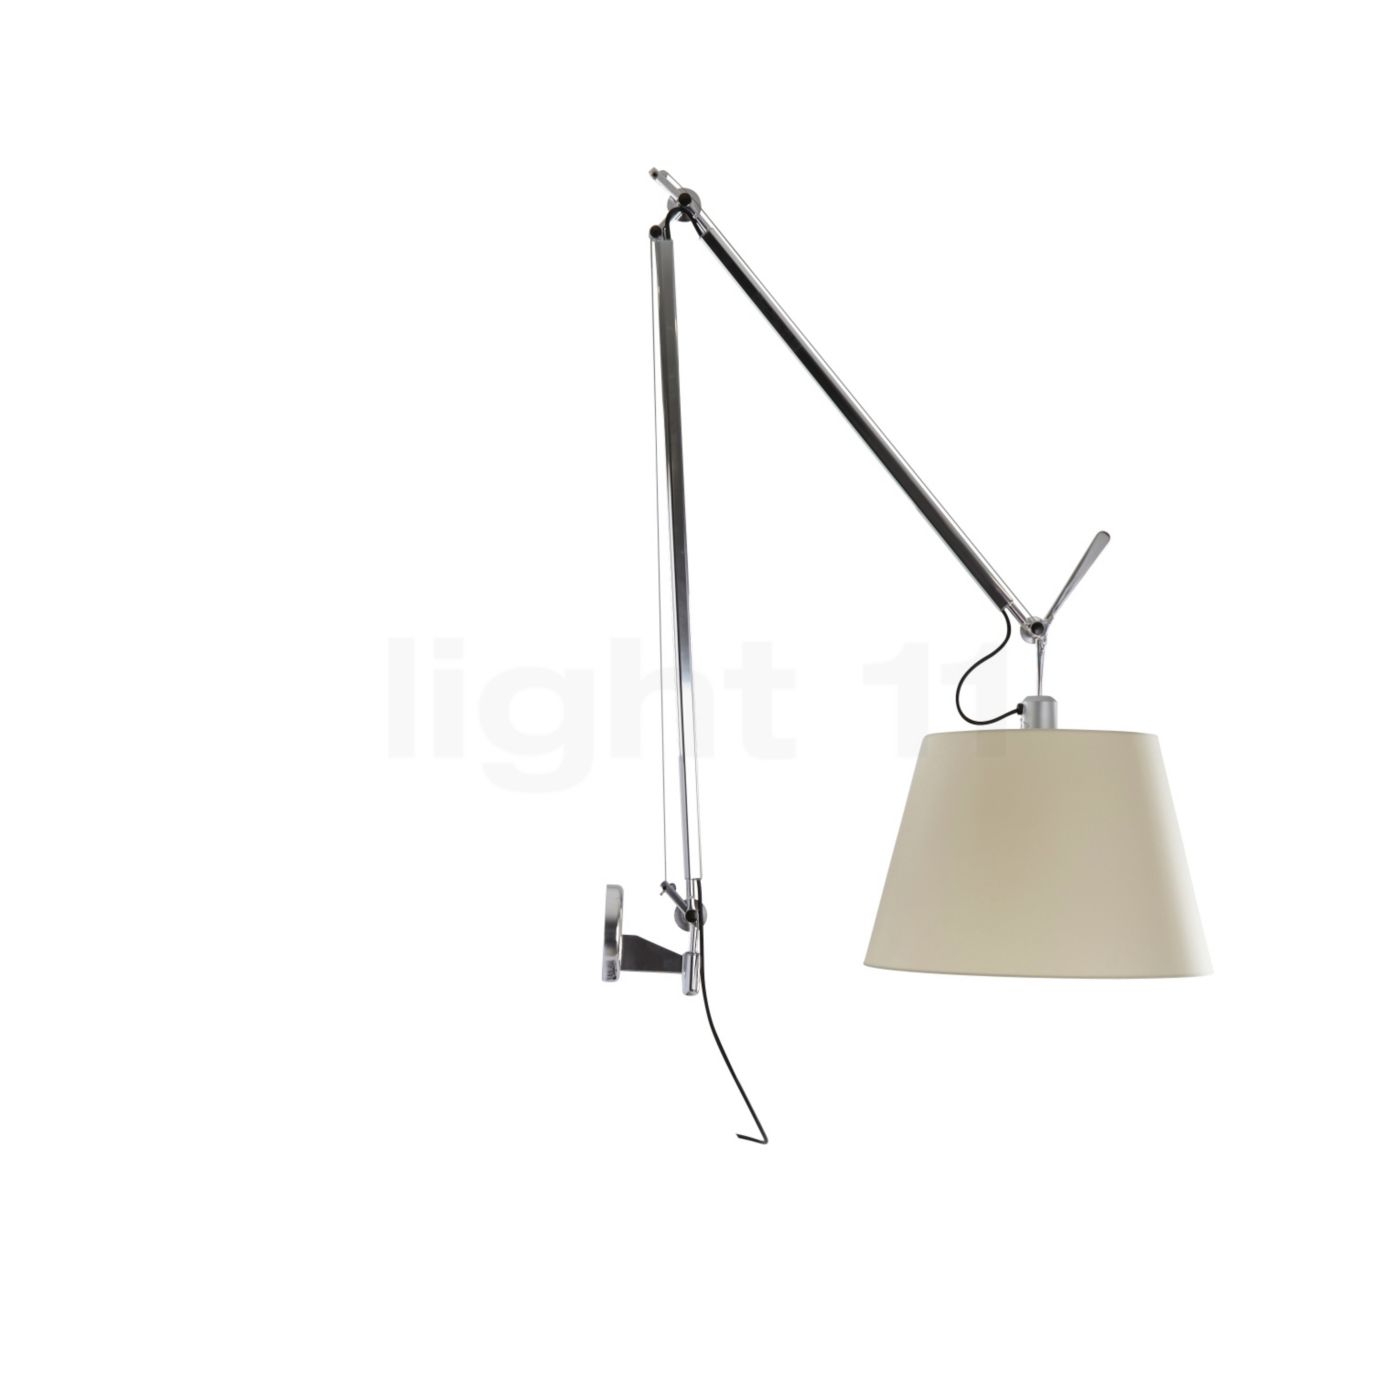 artemide wandlamp artemide tolomeo micro parete wandlamp bxh with artemide wandlamp full size. Black Bedroom Furniture Sets. Home Design Ideas